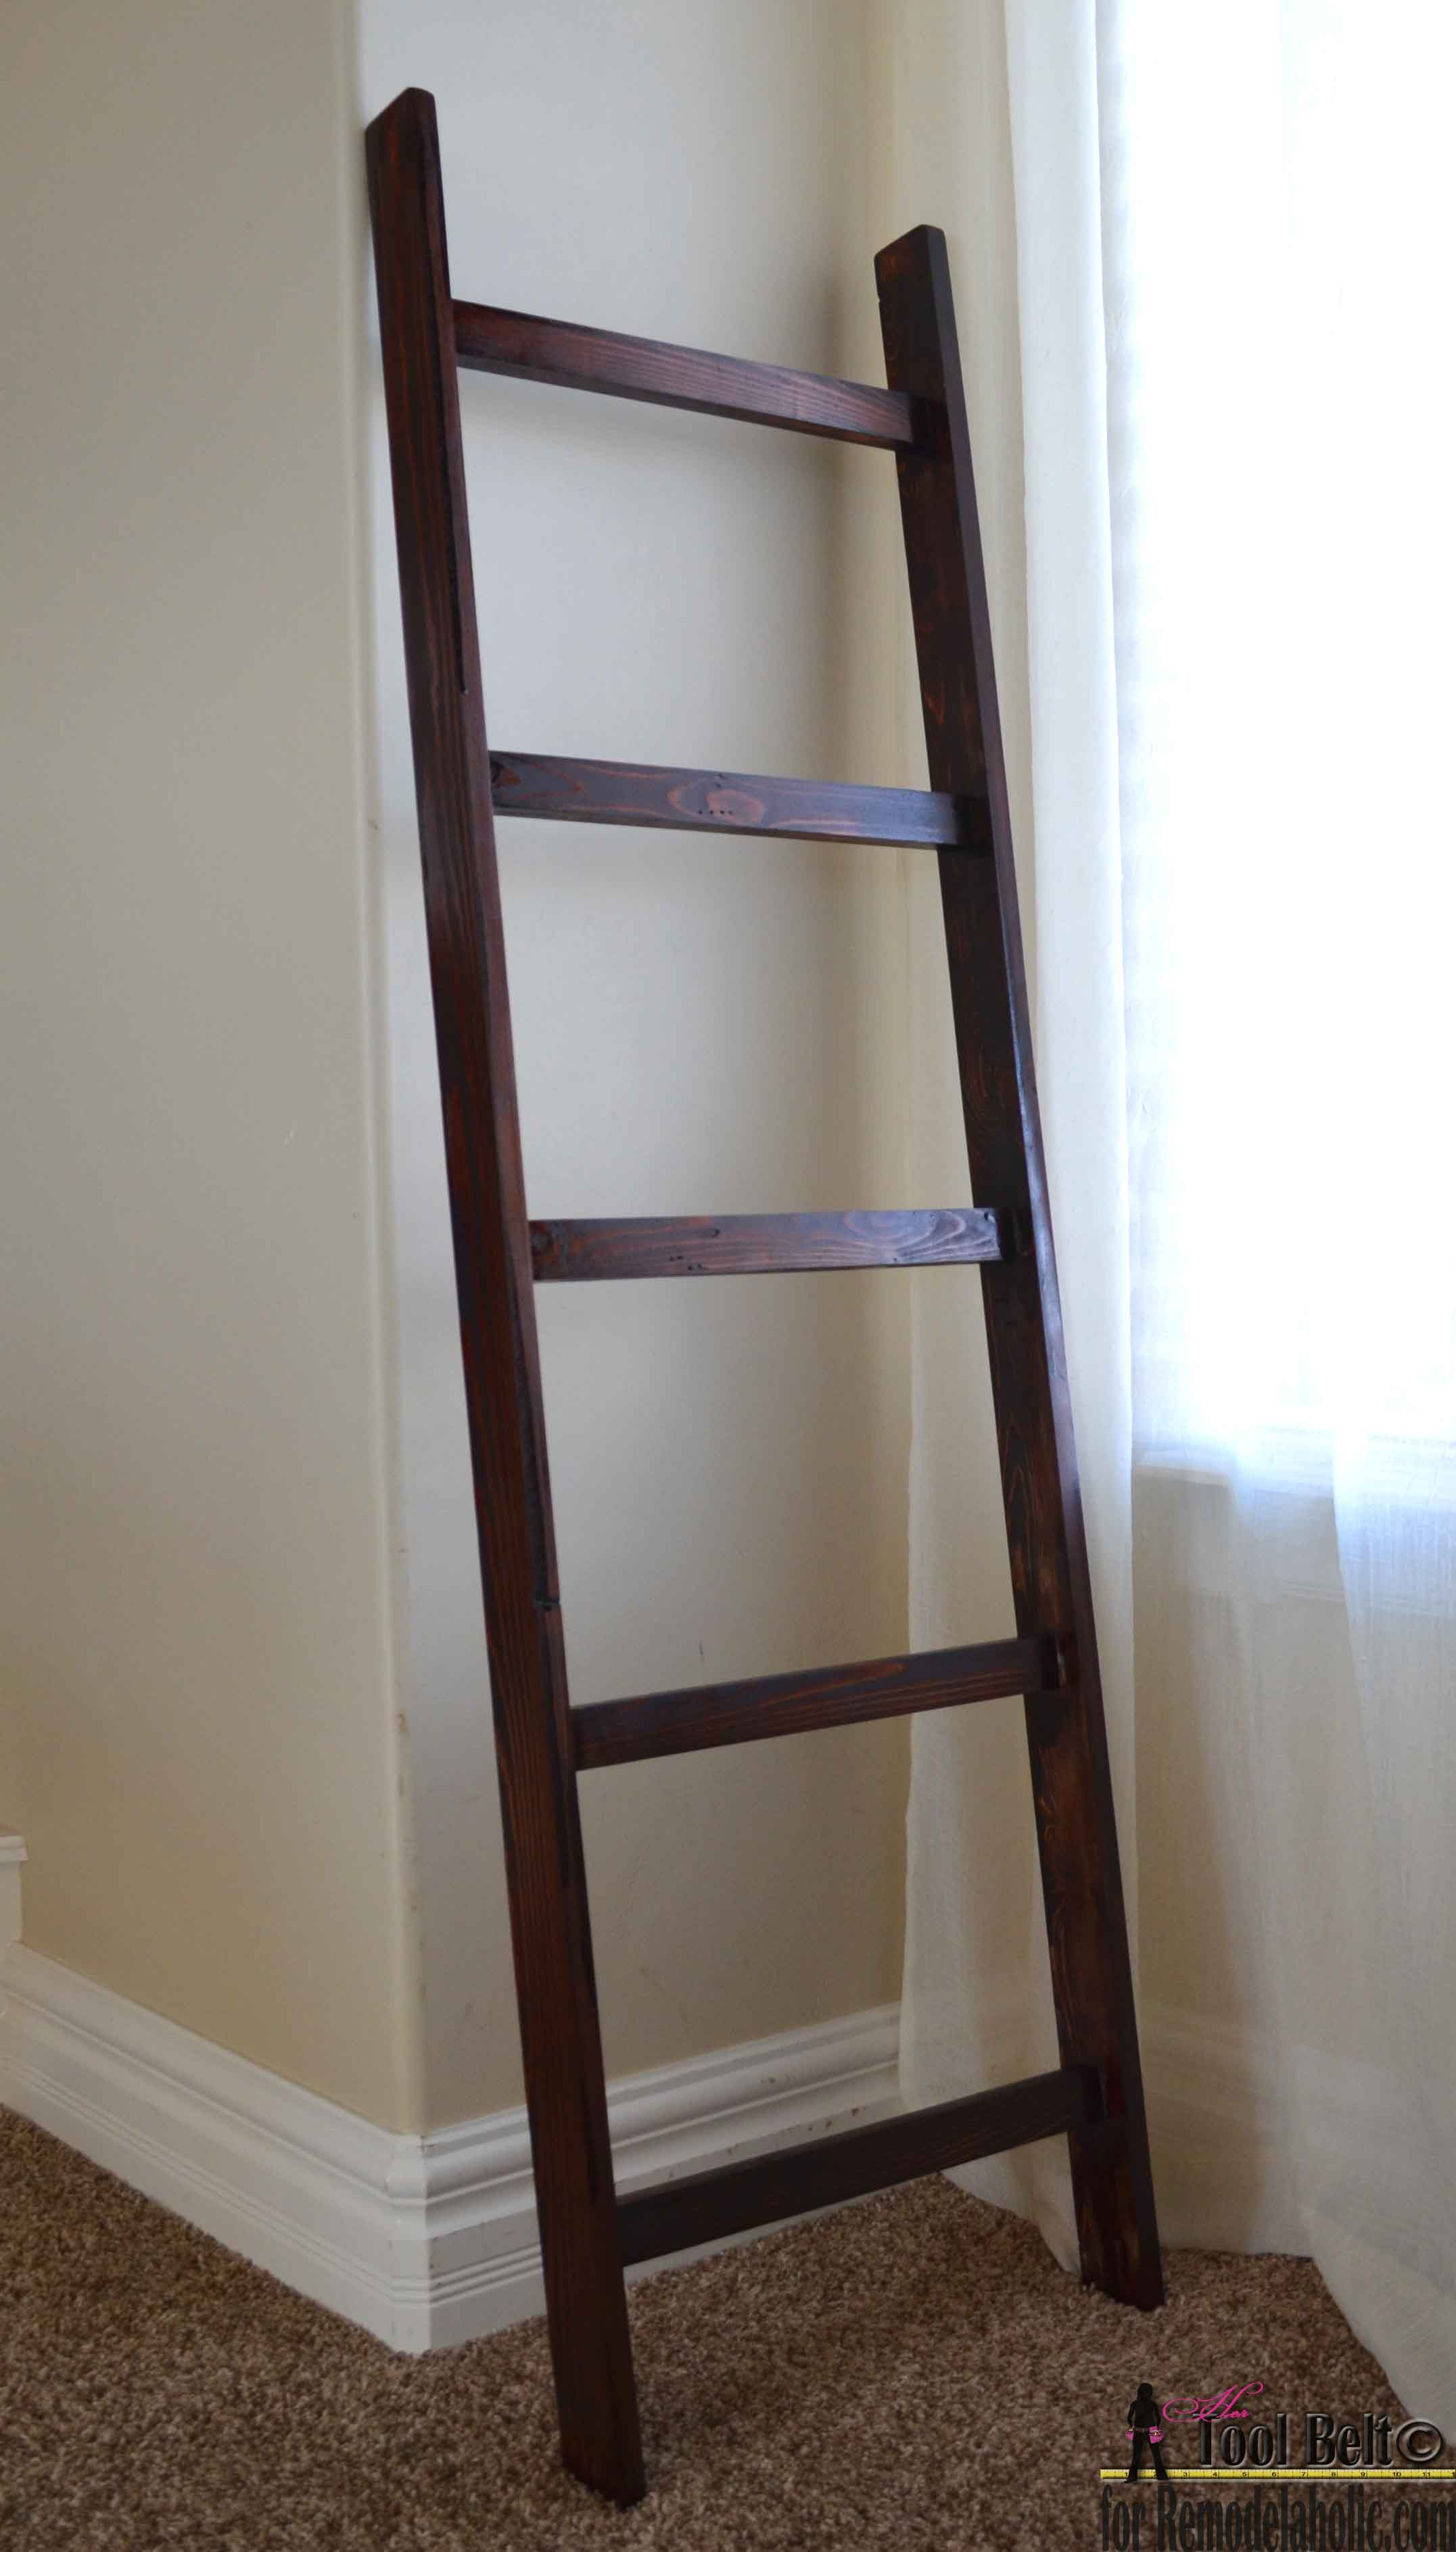 Zebra decor living room - Remodelaholic Build An Easy Blanket Ladder For Just 5